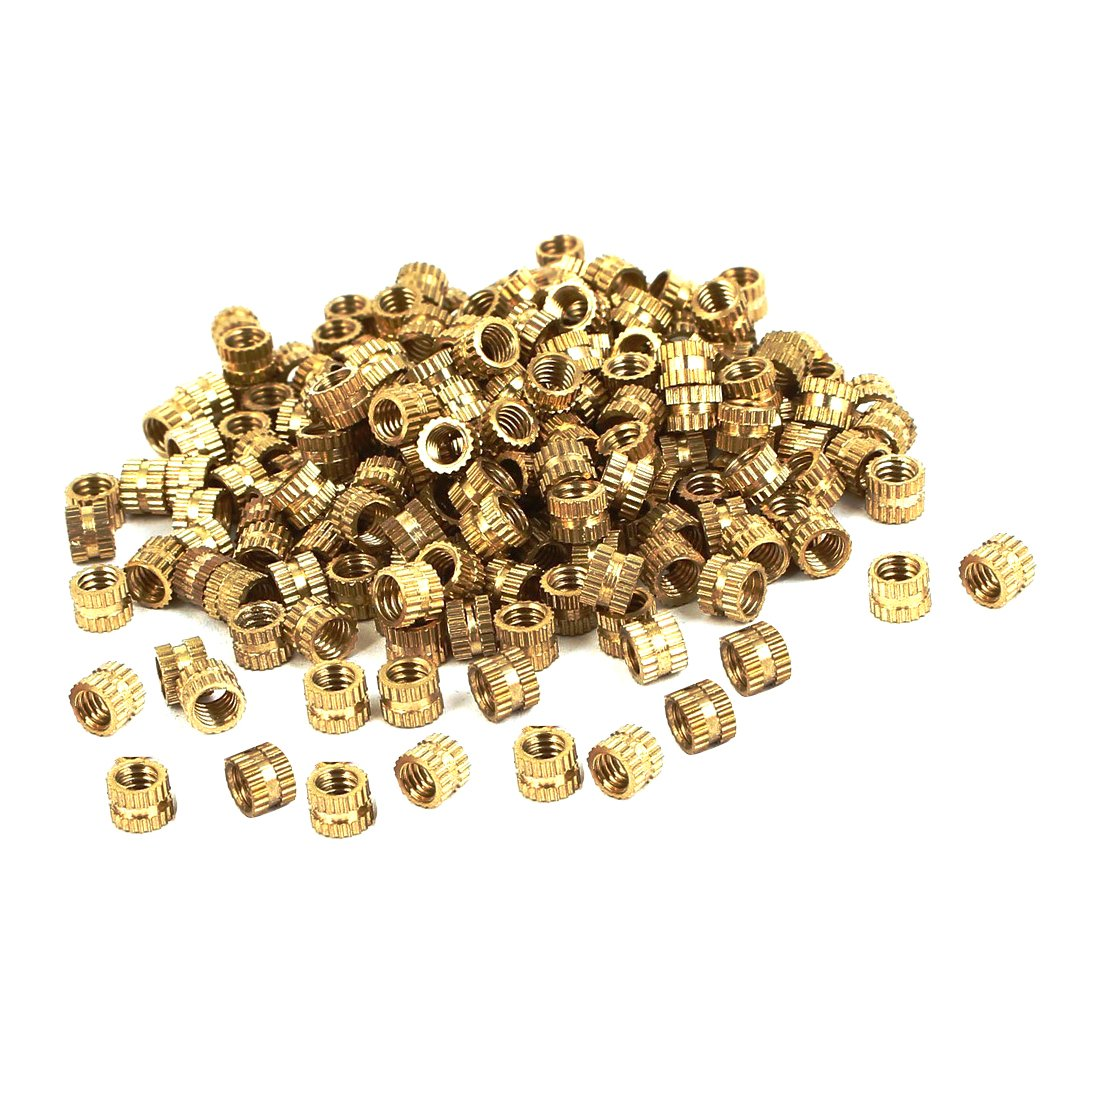 ZXHAO M4 Brass Injection Molding Knurled Threaded Insert Nuts 200 Pcs M4x4x5.3mm 5//32x5//32x3//64 inch